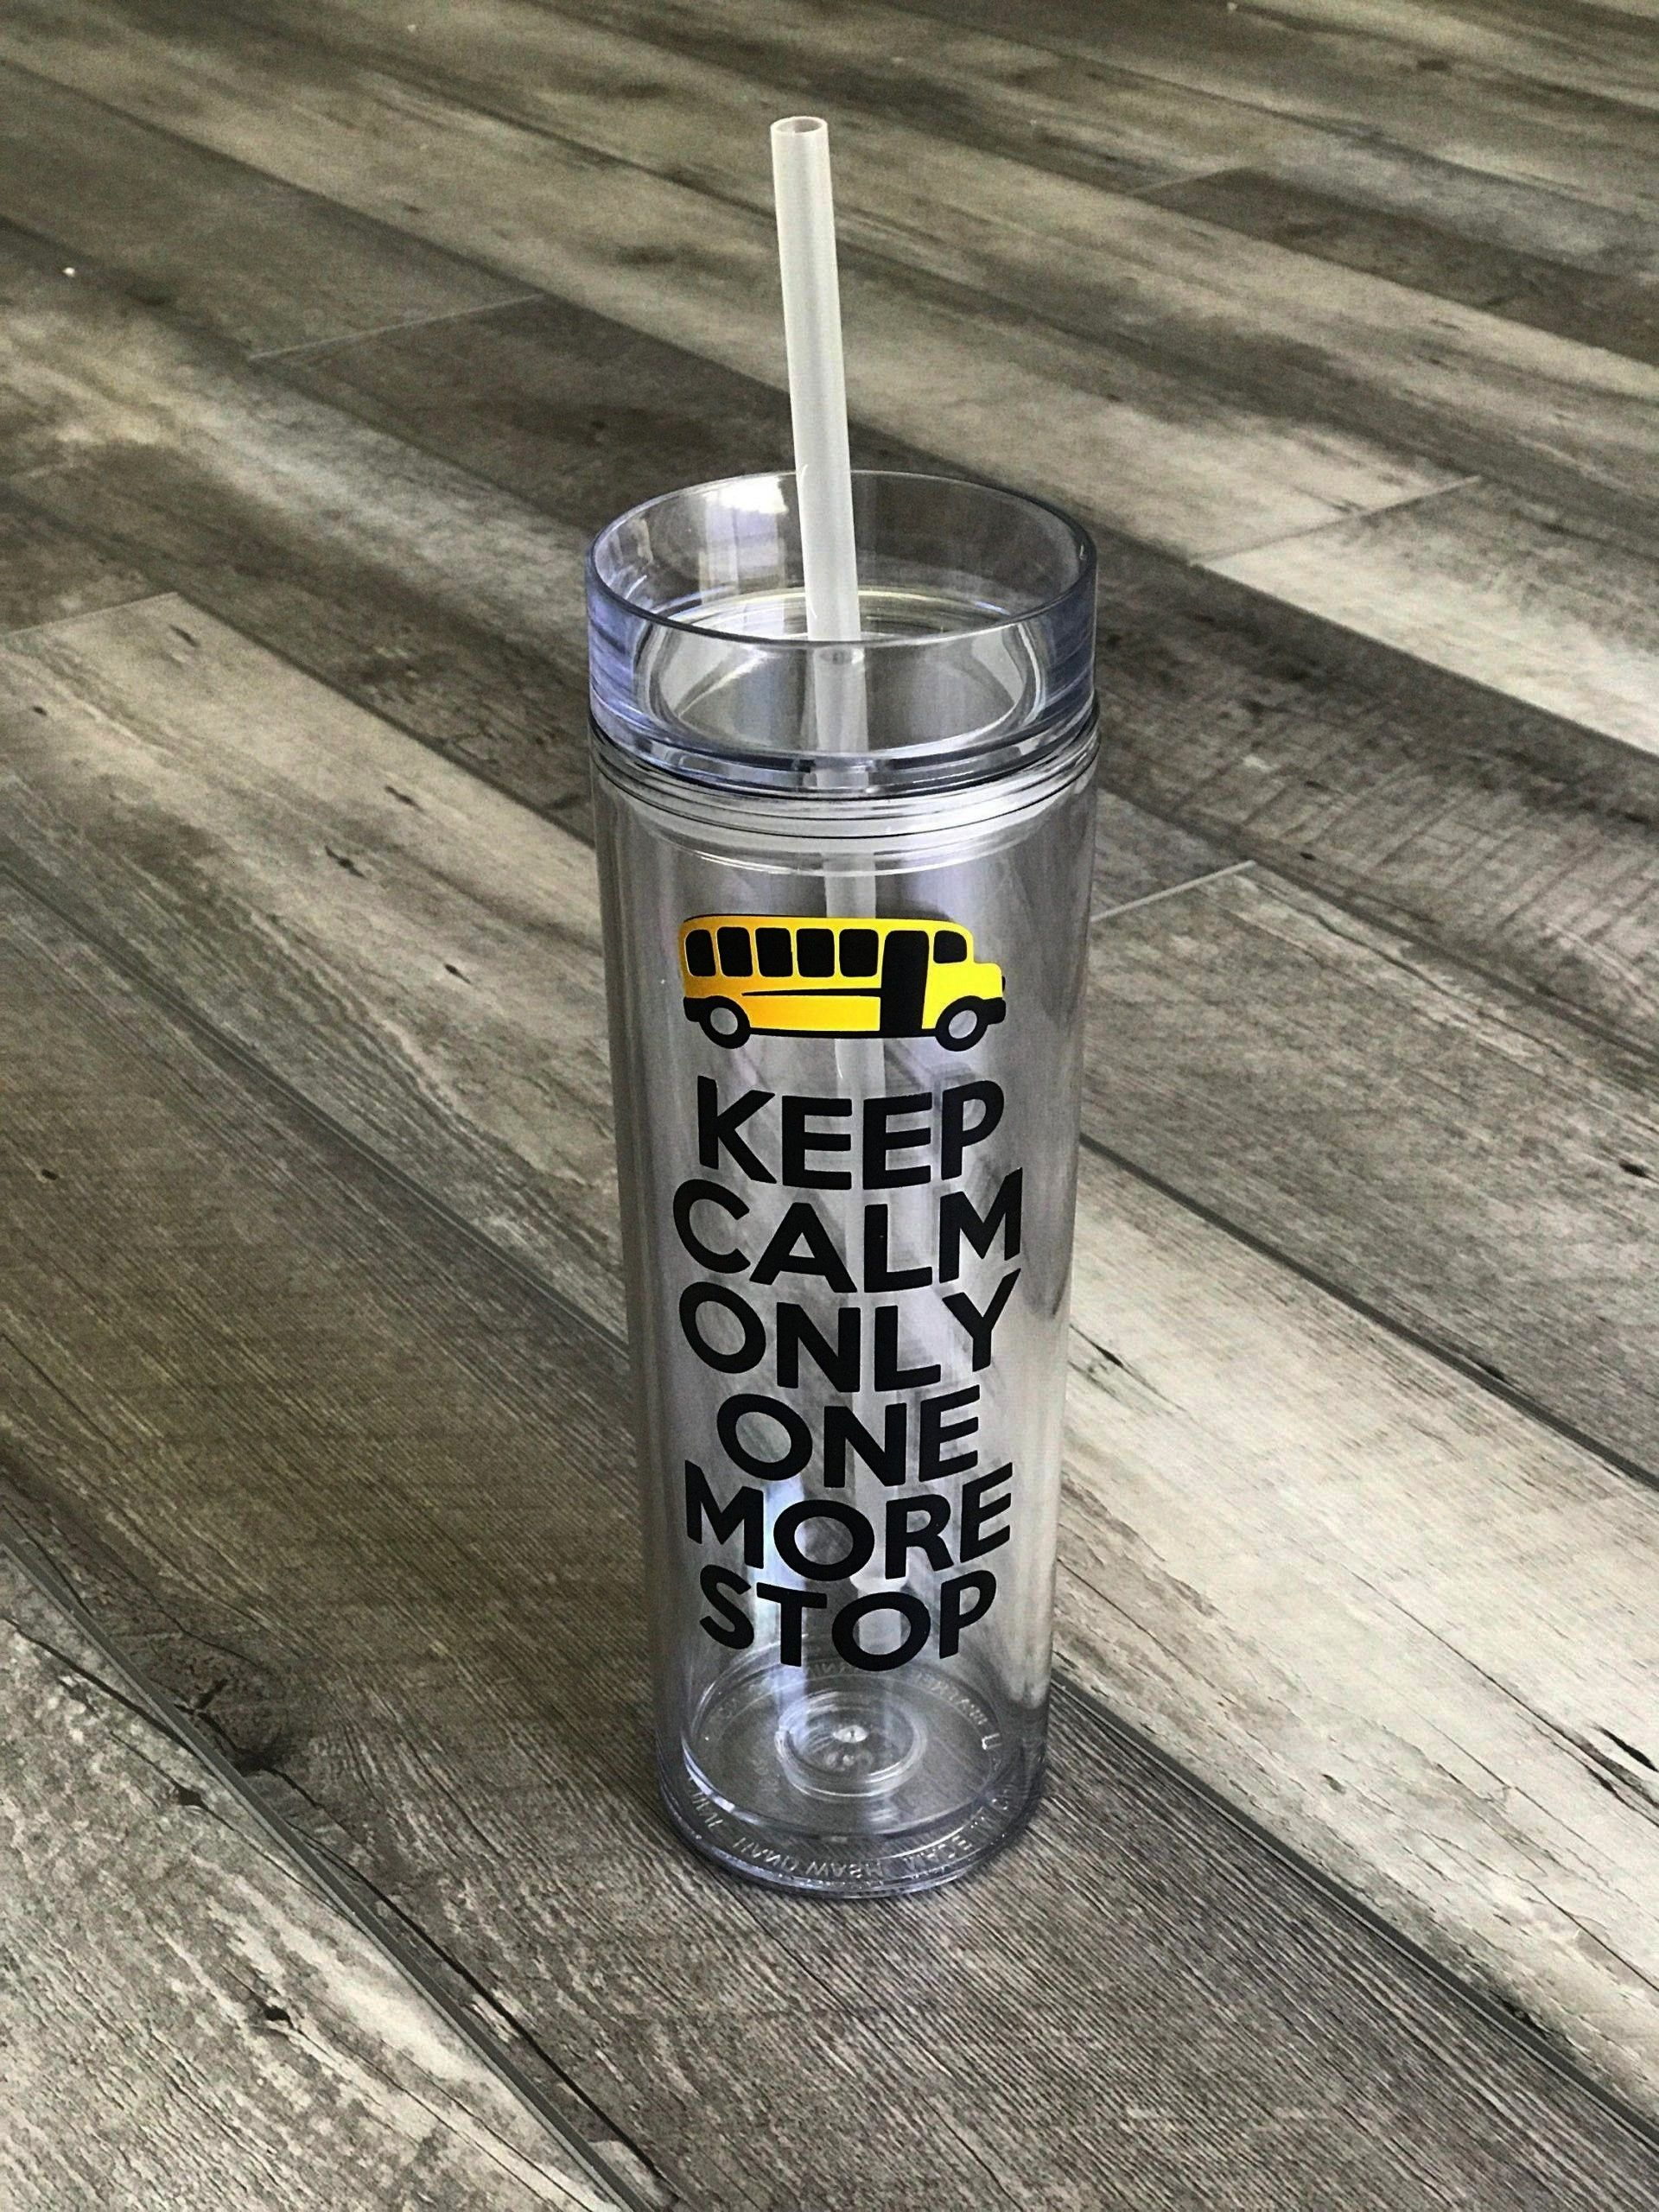 Driver Gift  Keep Calm Only One More Stop  Water Bottle With Straw  Tumbler with StrawbottleSchool Bus Driver Gift  Keep Calm Only One More Stop  Water Bottle With Straw...